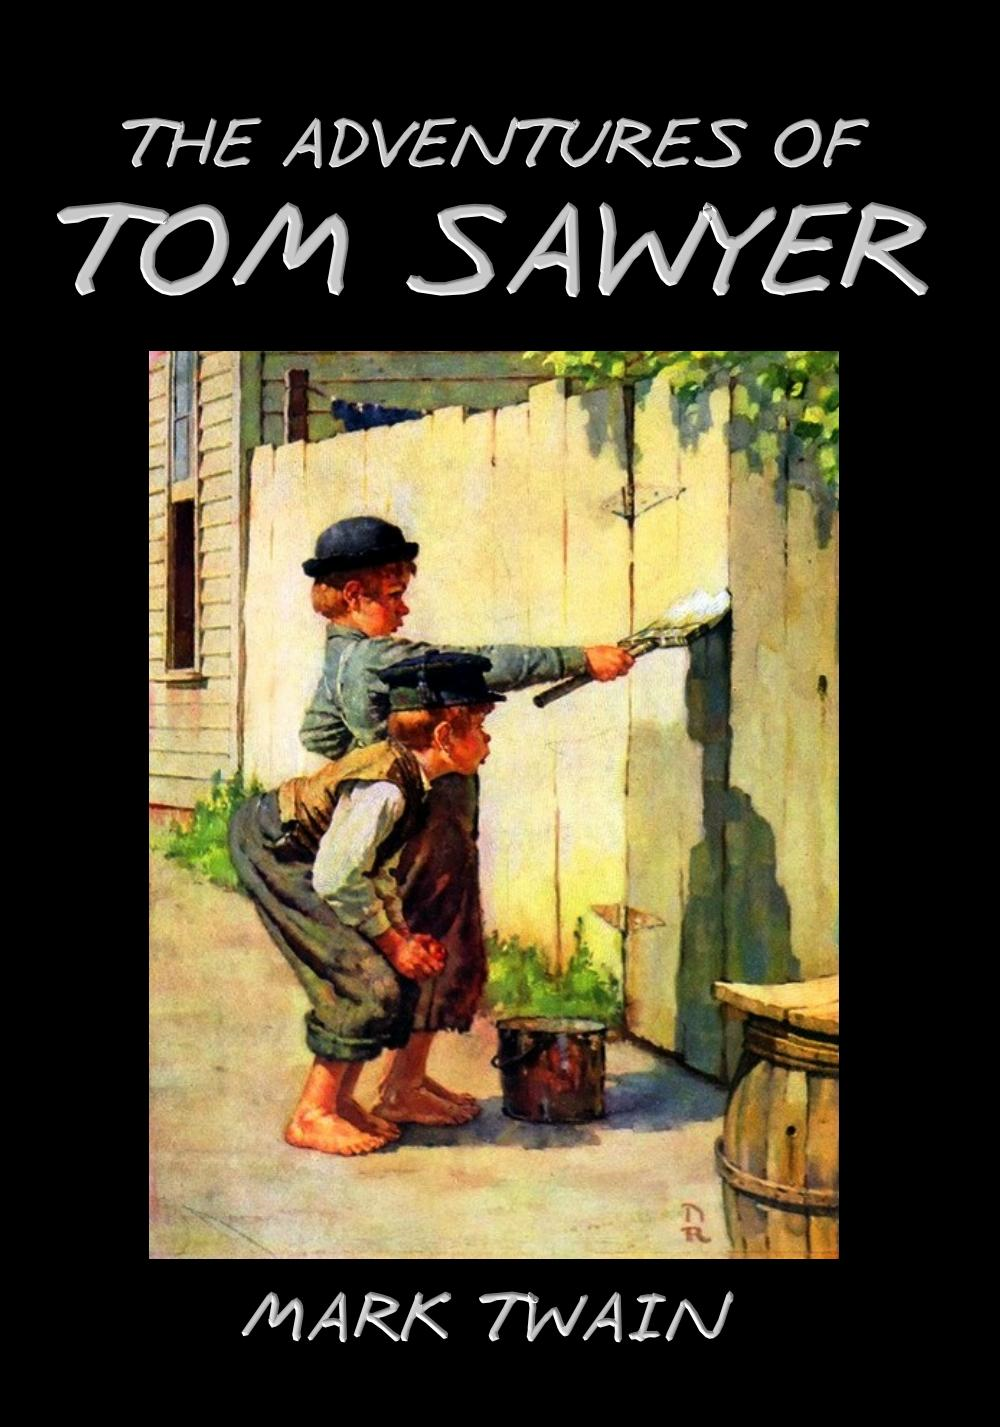 a book report on the adventures of tom sawyer by mark twain The adventures of tom sawyer by mark twain is a very enthralling novel it is about an imaginative young boy, tom sawyer who can be very mischievous but is naturally good, instead of his half brother sid, or the novel's antagonist, injun joe.